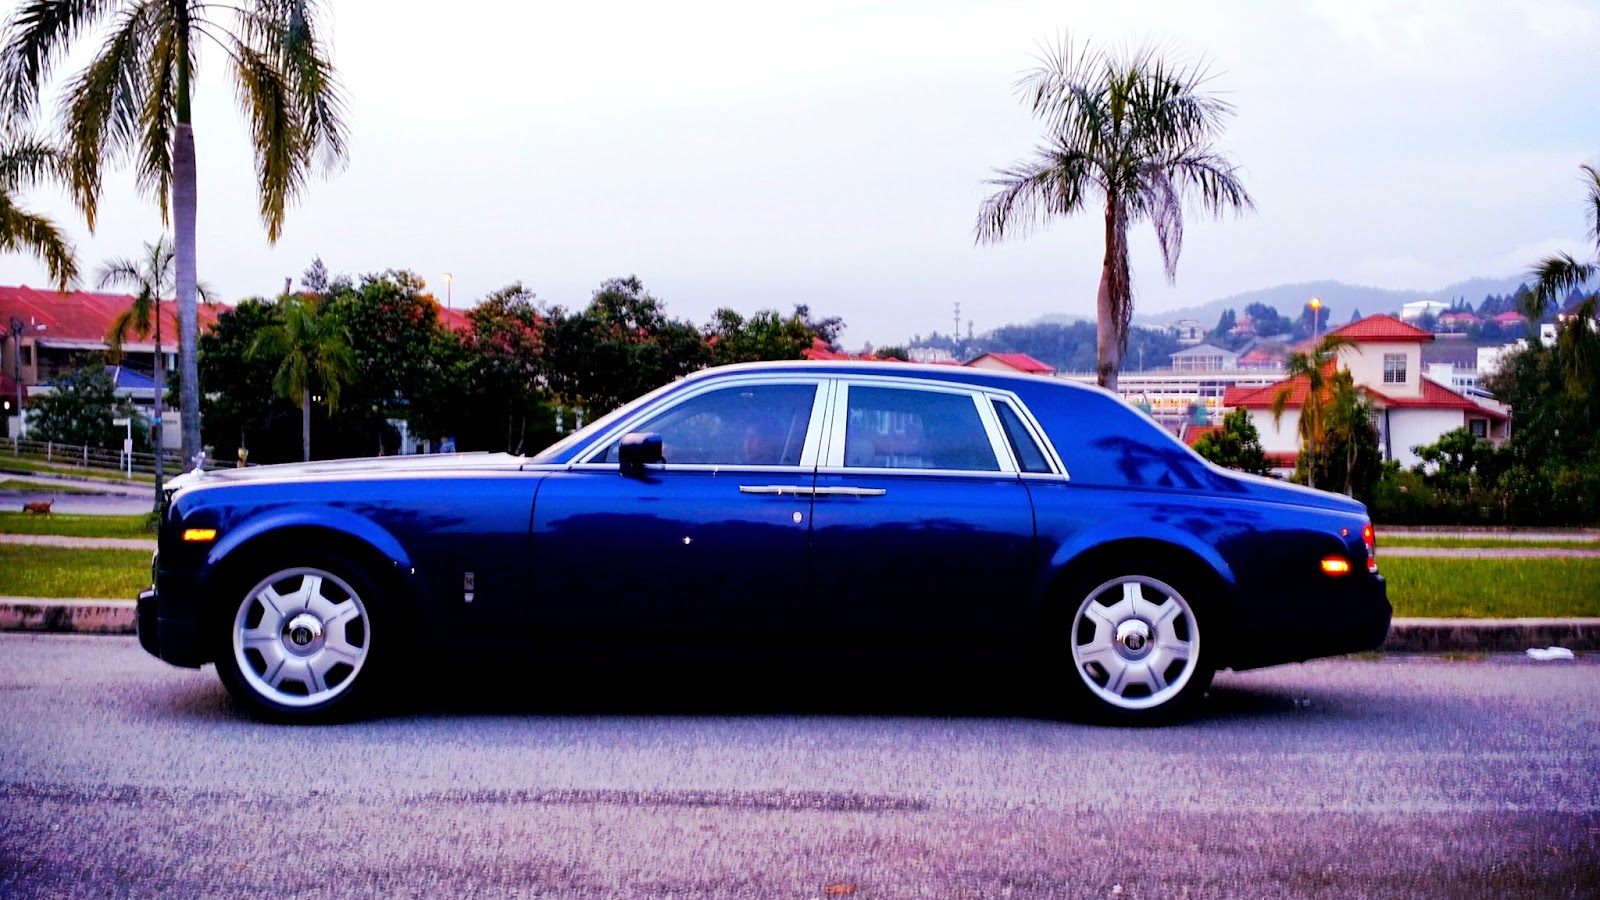 RedOrca Malaysia Wedding And Event Car Rental Rolls Royce Rental For Event In Sunway Resort